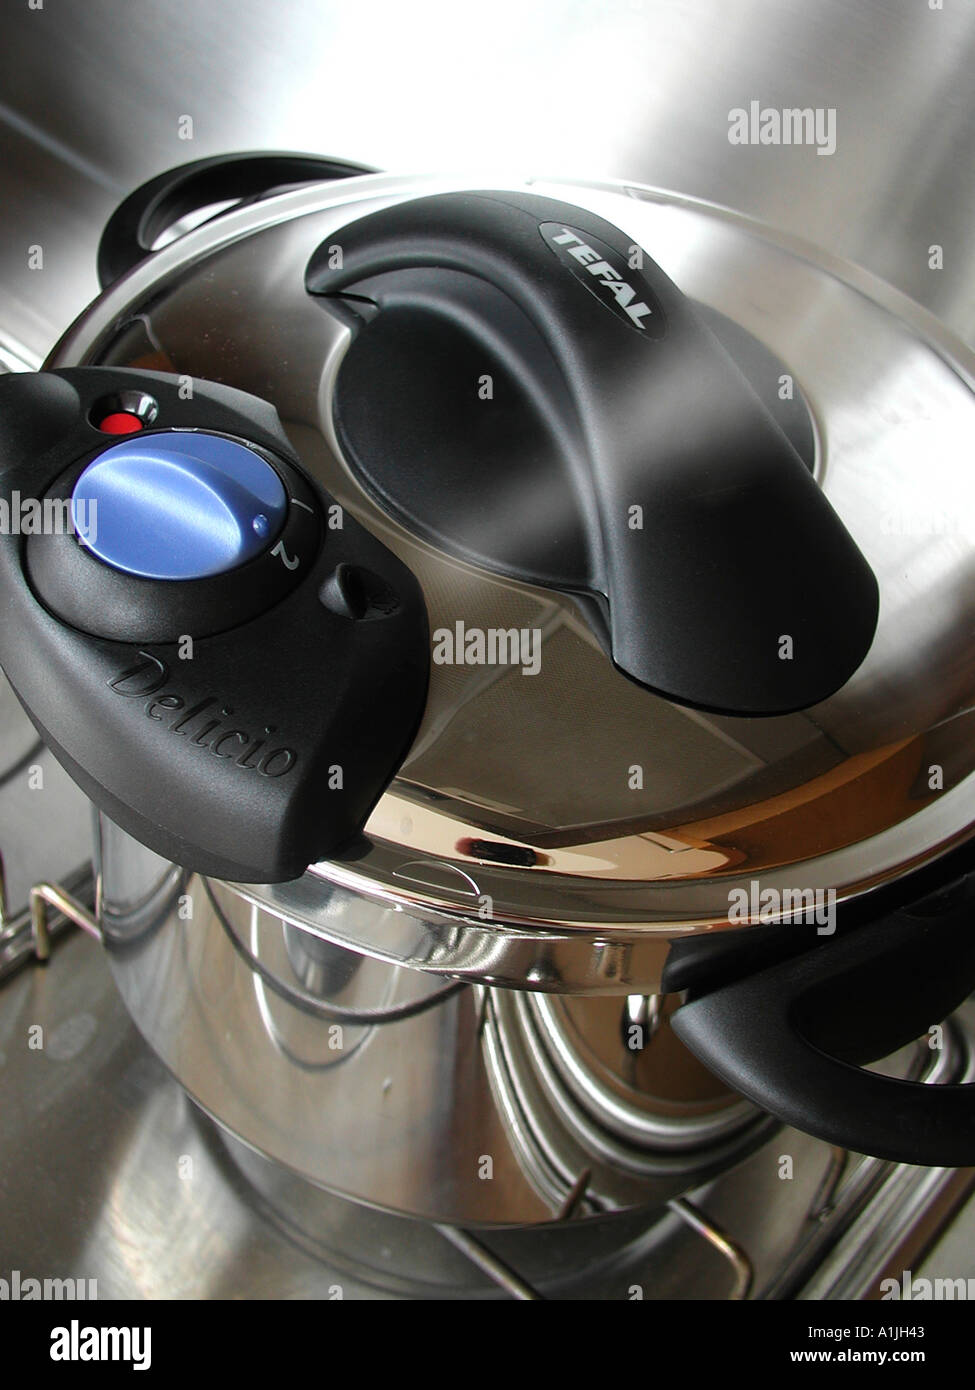 Using a pressure cooker - Stock Image